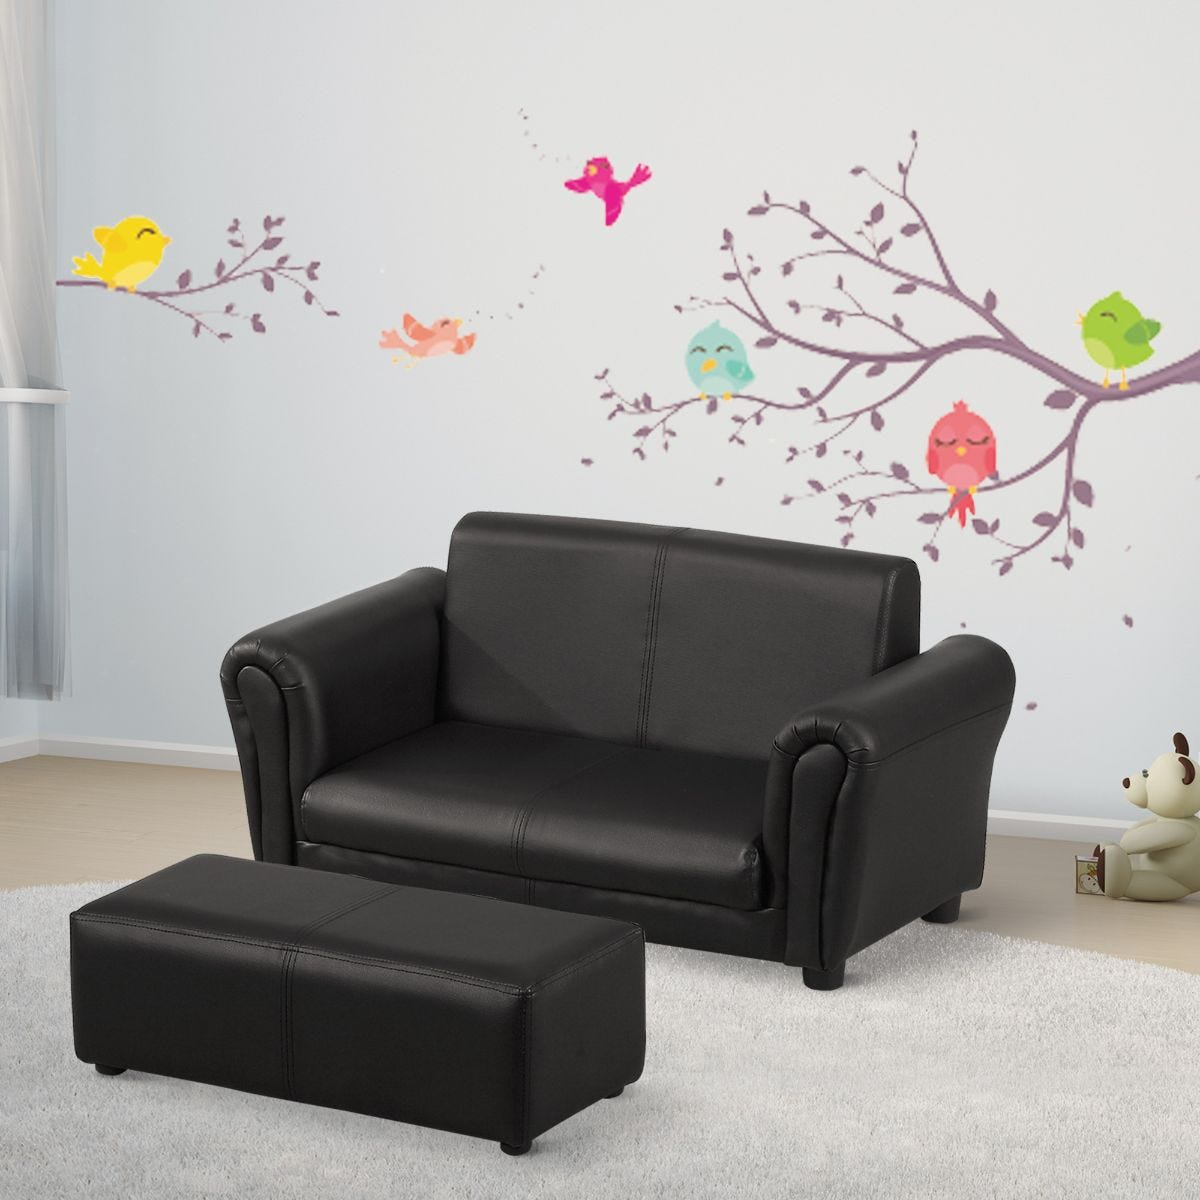 Kids Two Seater Sofa Childrens Armchair With Foot Stool Black